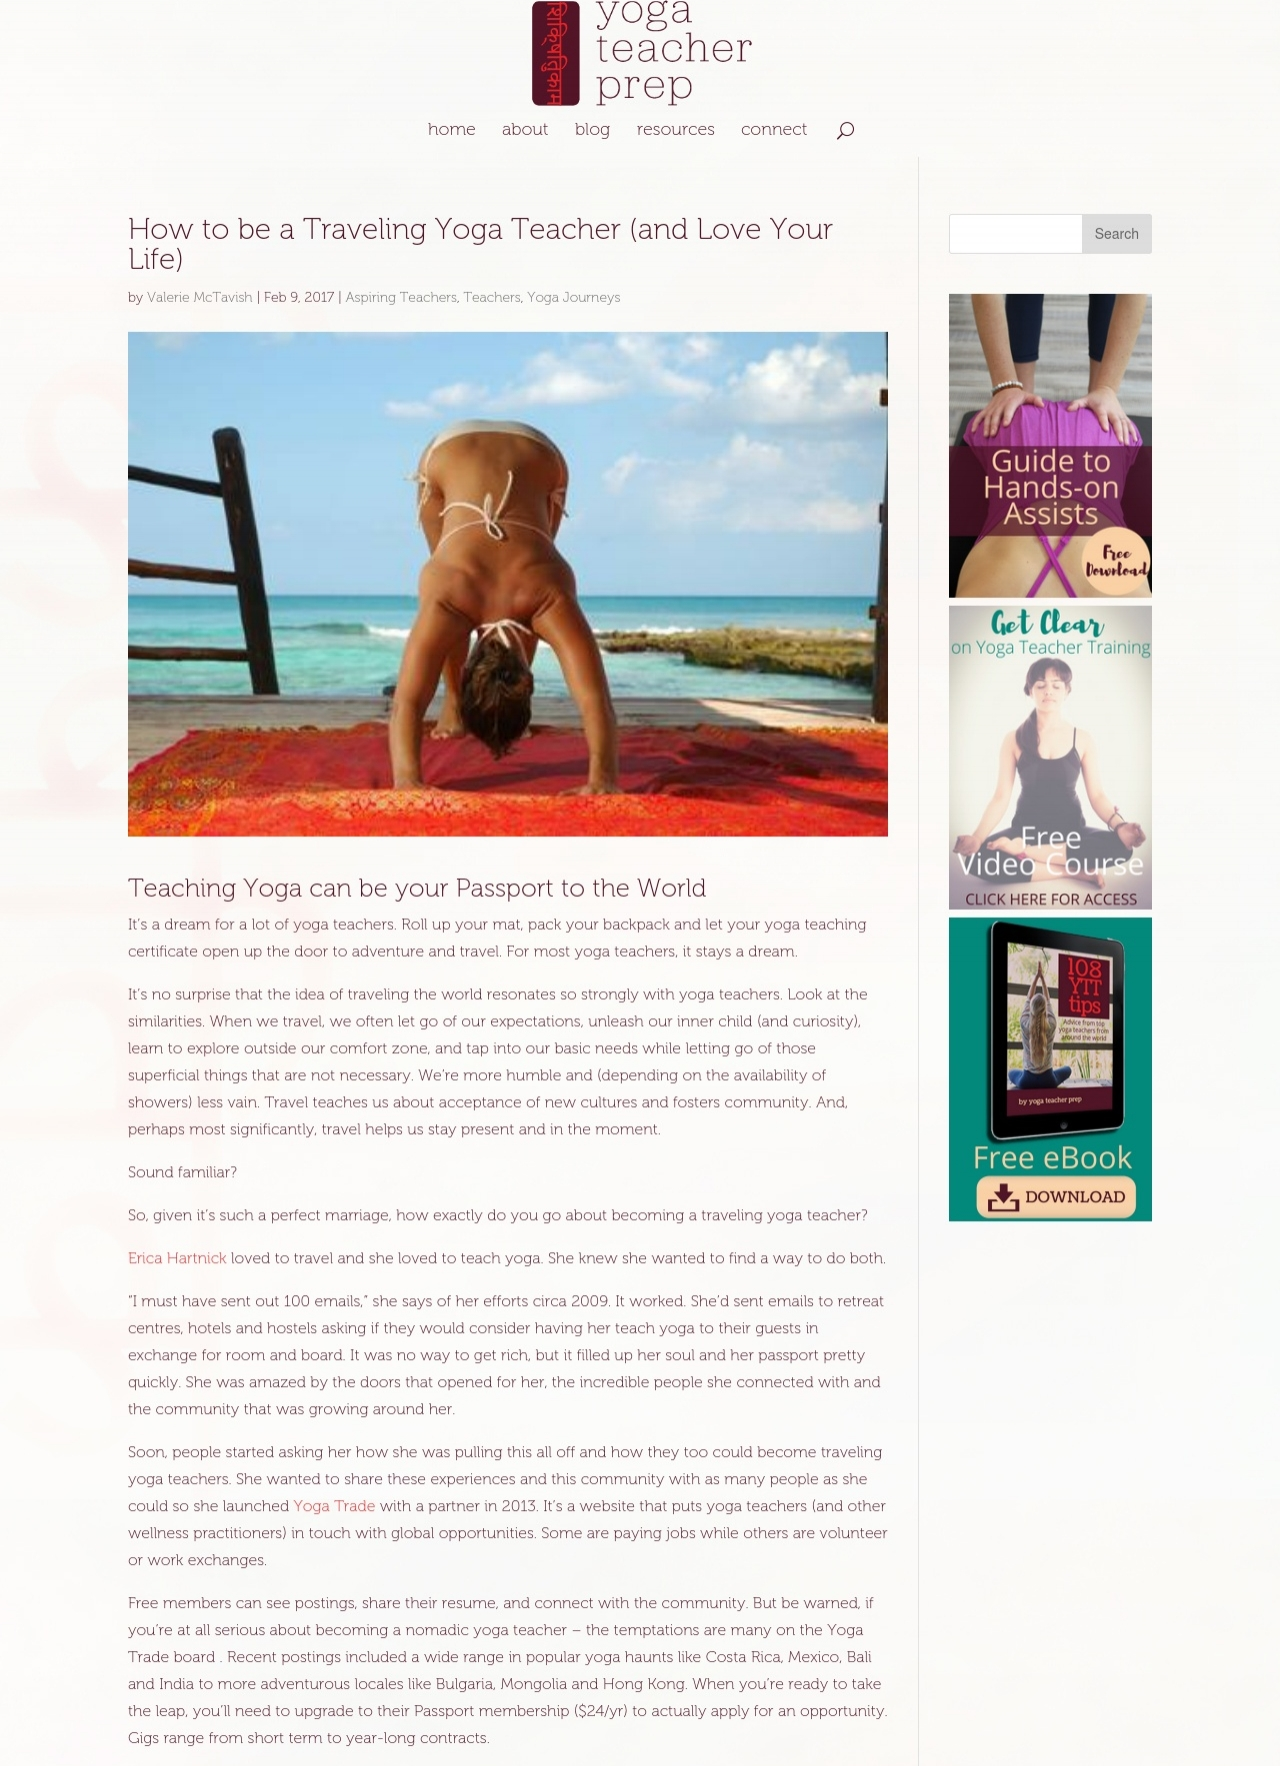 Yoga Teacher Prep Interview - Click to read tips on how to become a traveling yoga teacher!